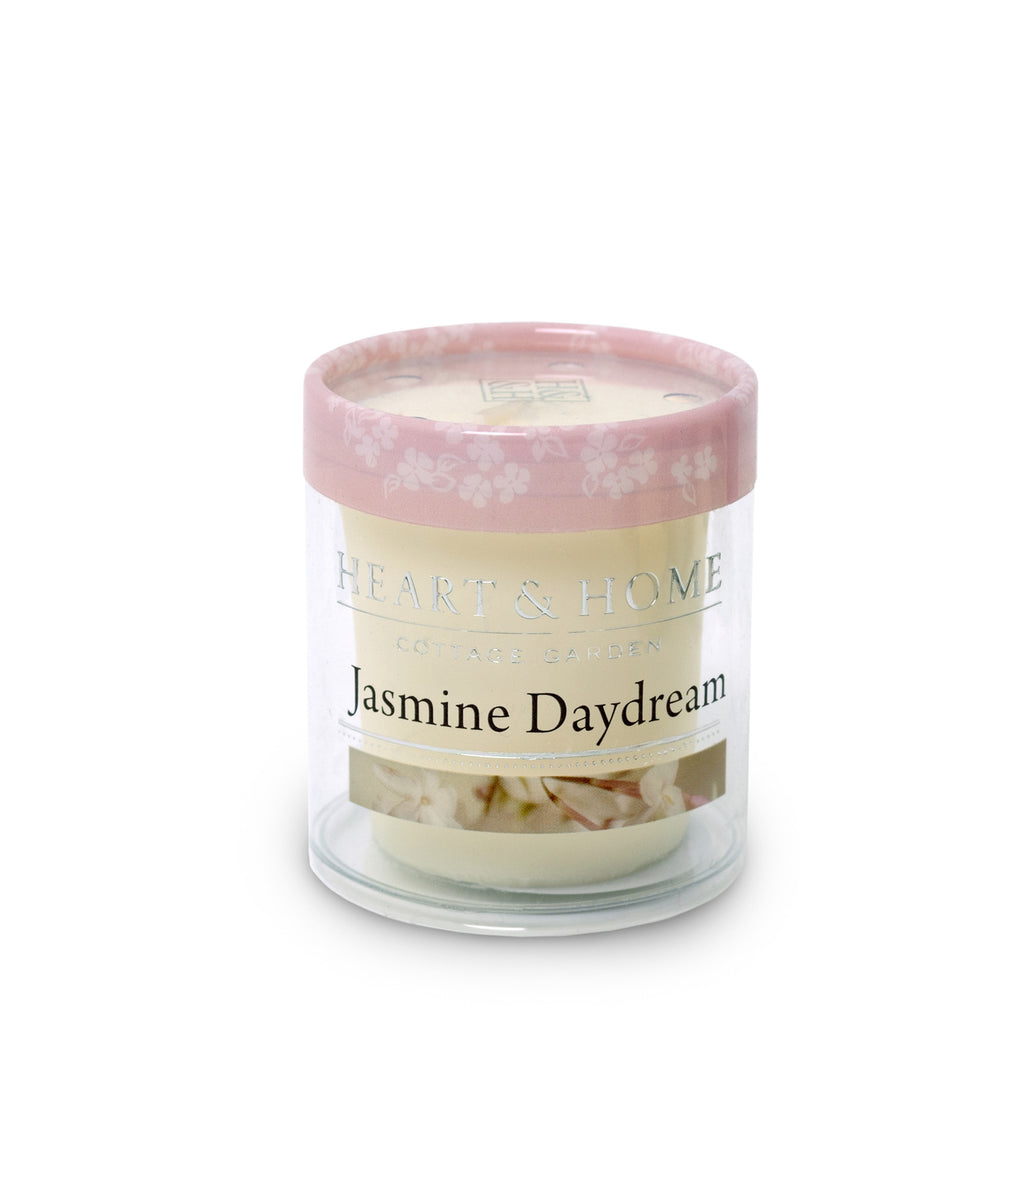 Jasmine Daydream - Votive - From Heart and Home